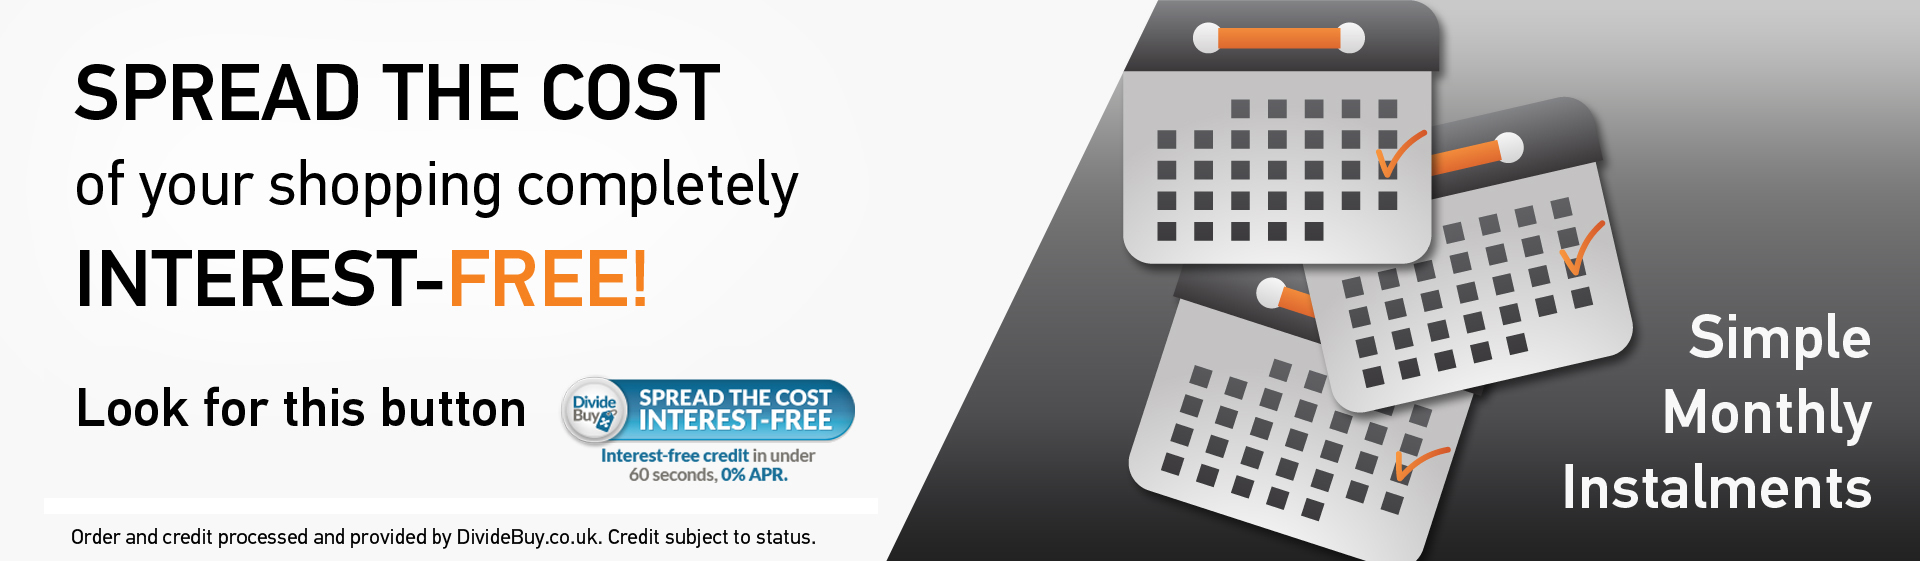 Spread the cost of your shopping completely - Interest-free - Simple Monthly Instalments